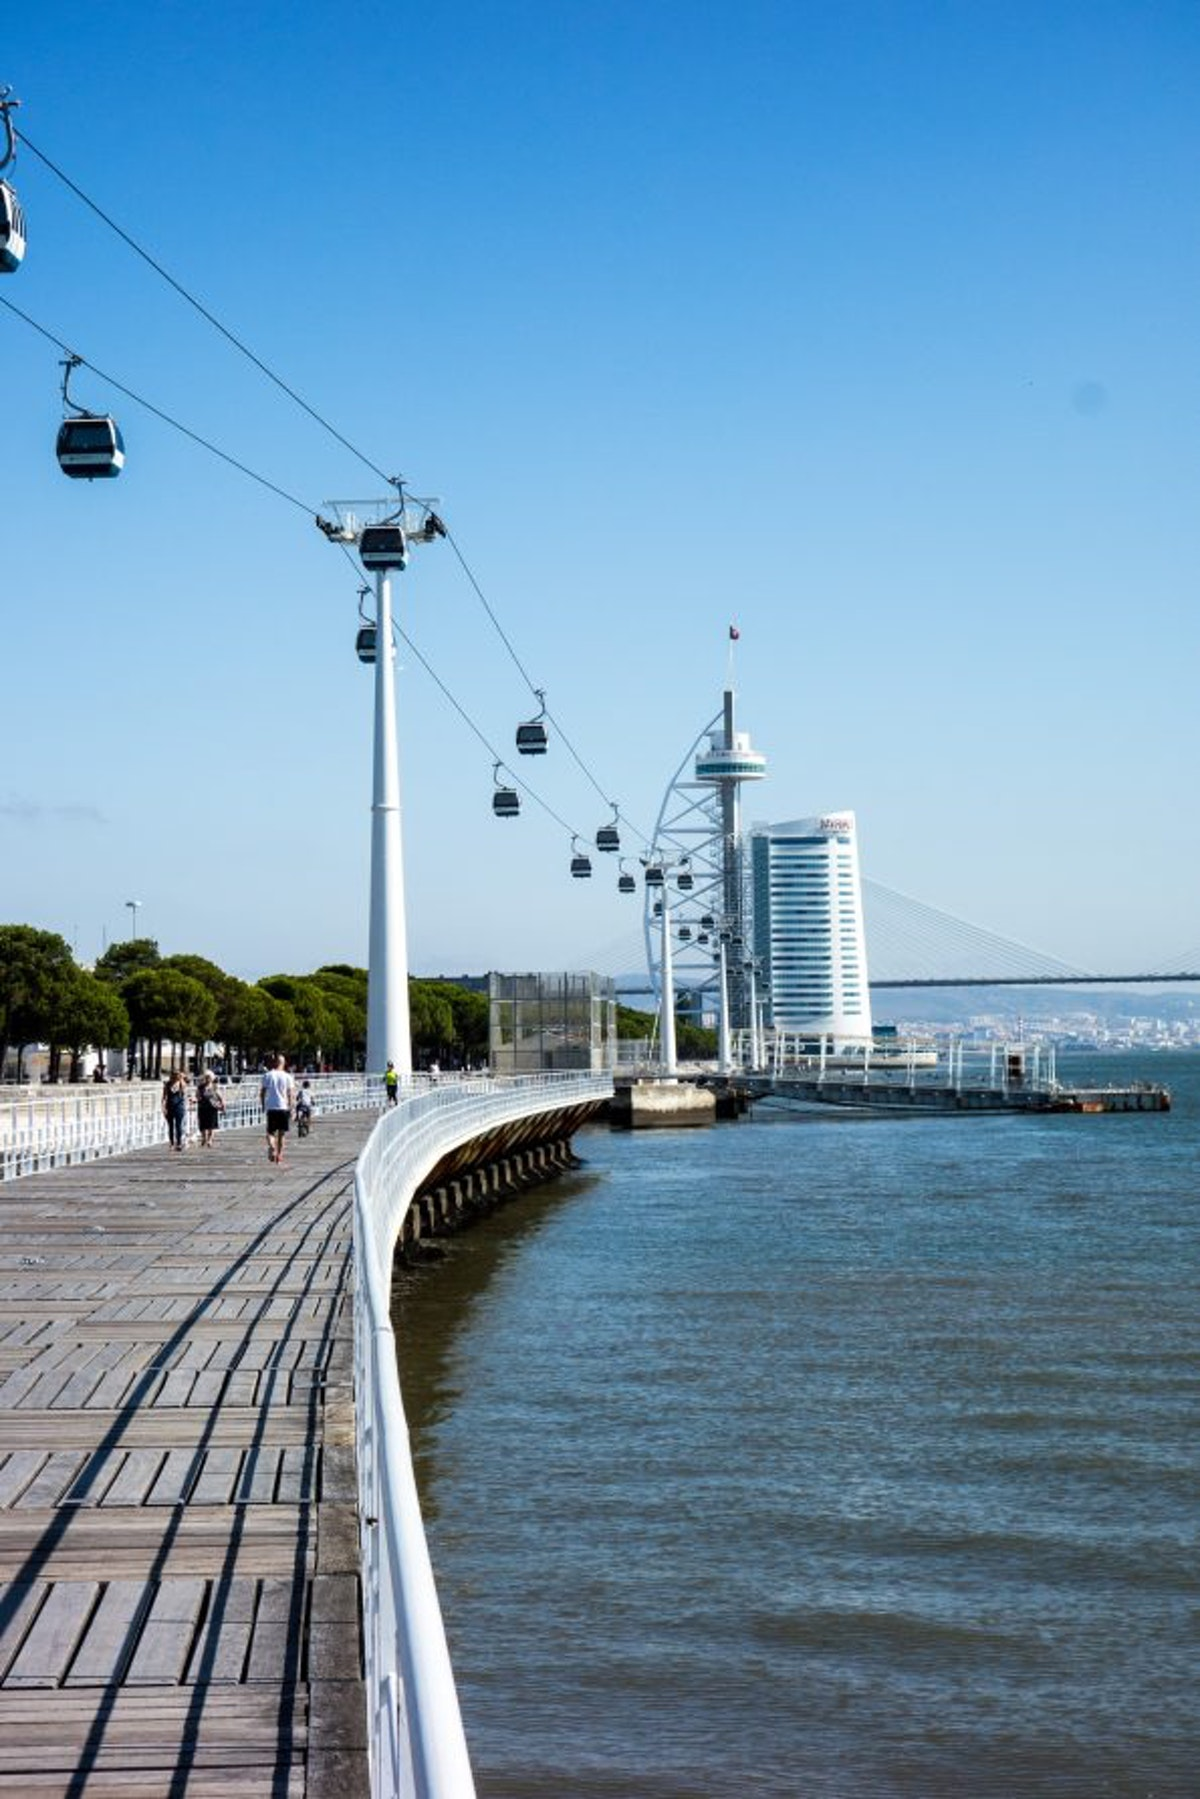 The boardwalk and cable car leading to the sail-shaped Vasco da Gama Tower